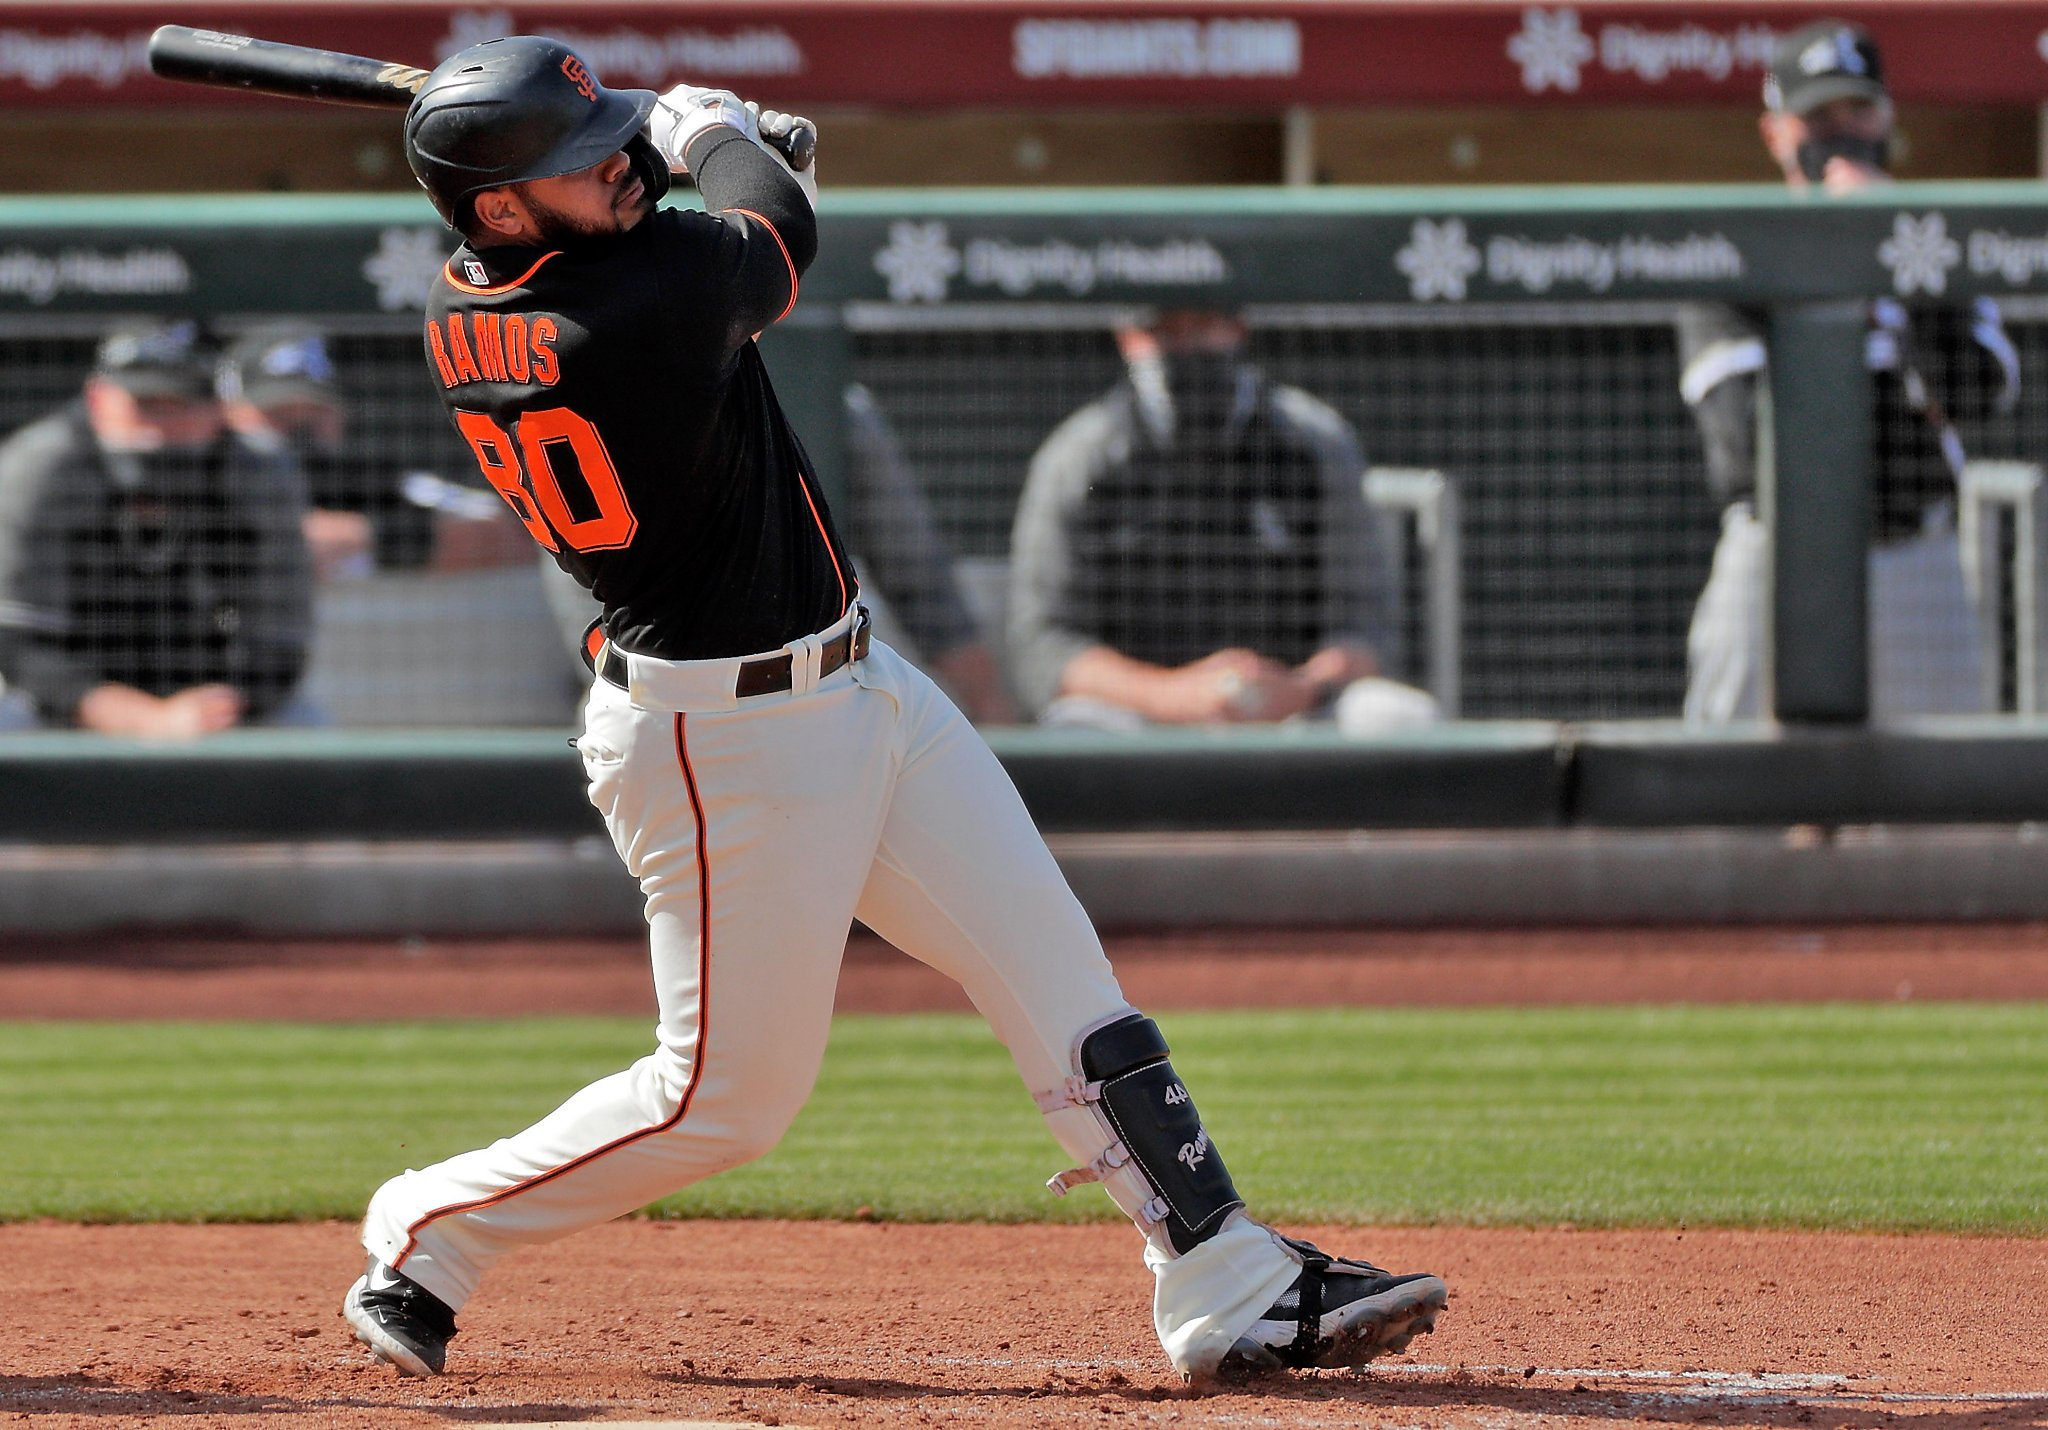 Giants' spring training observations: Have a day, Heliot Ramos